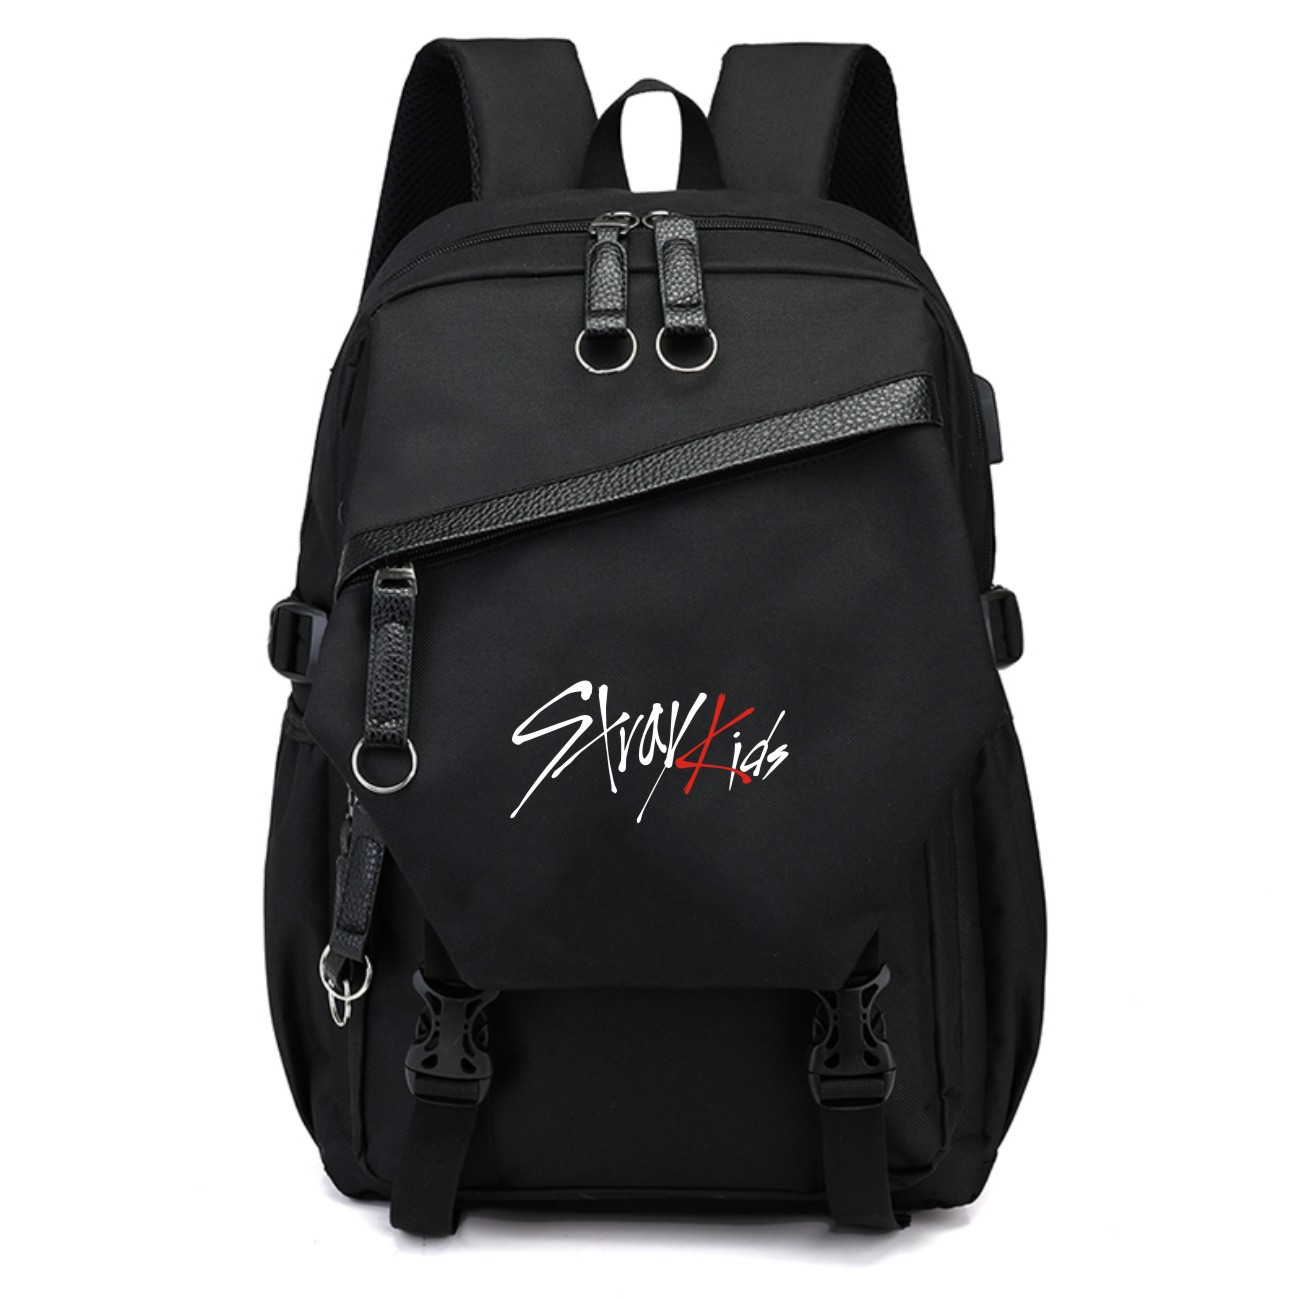 Korean KPOP Stray kids Backpack Fashion Black traveling school bags Large capacity Polyester colth Kpop stray kids supplies